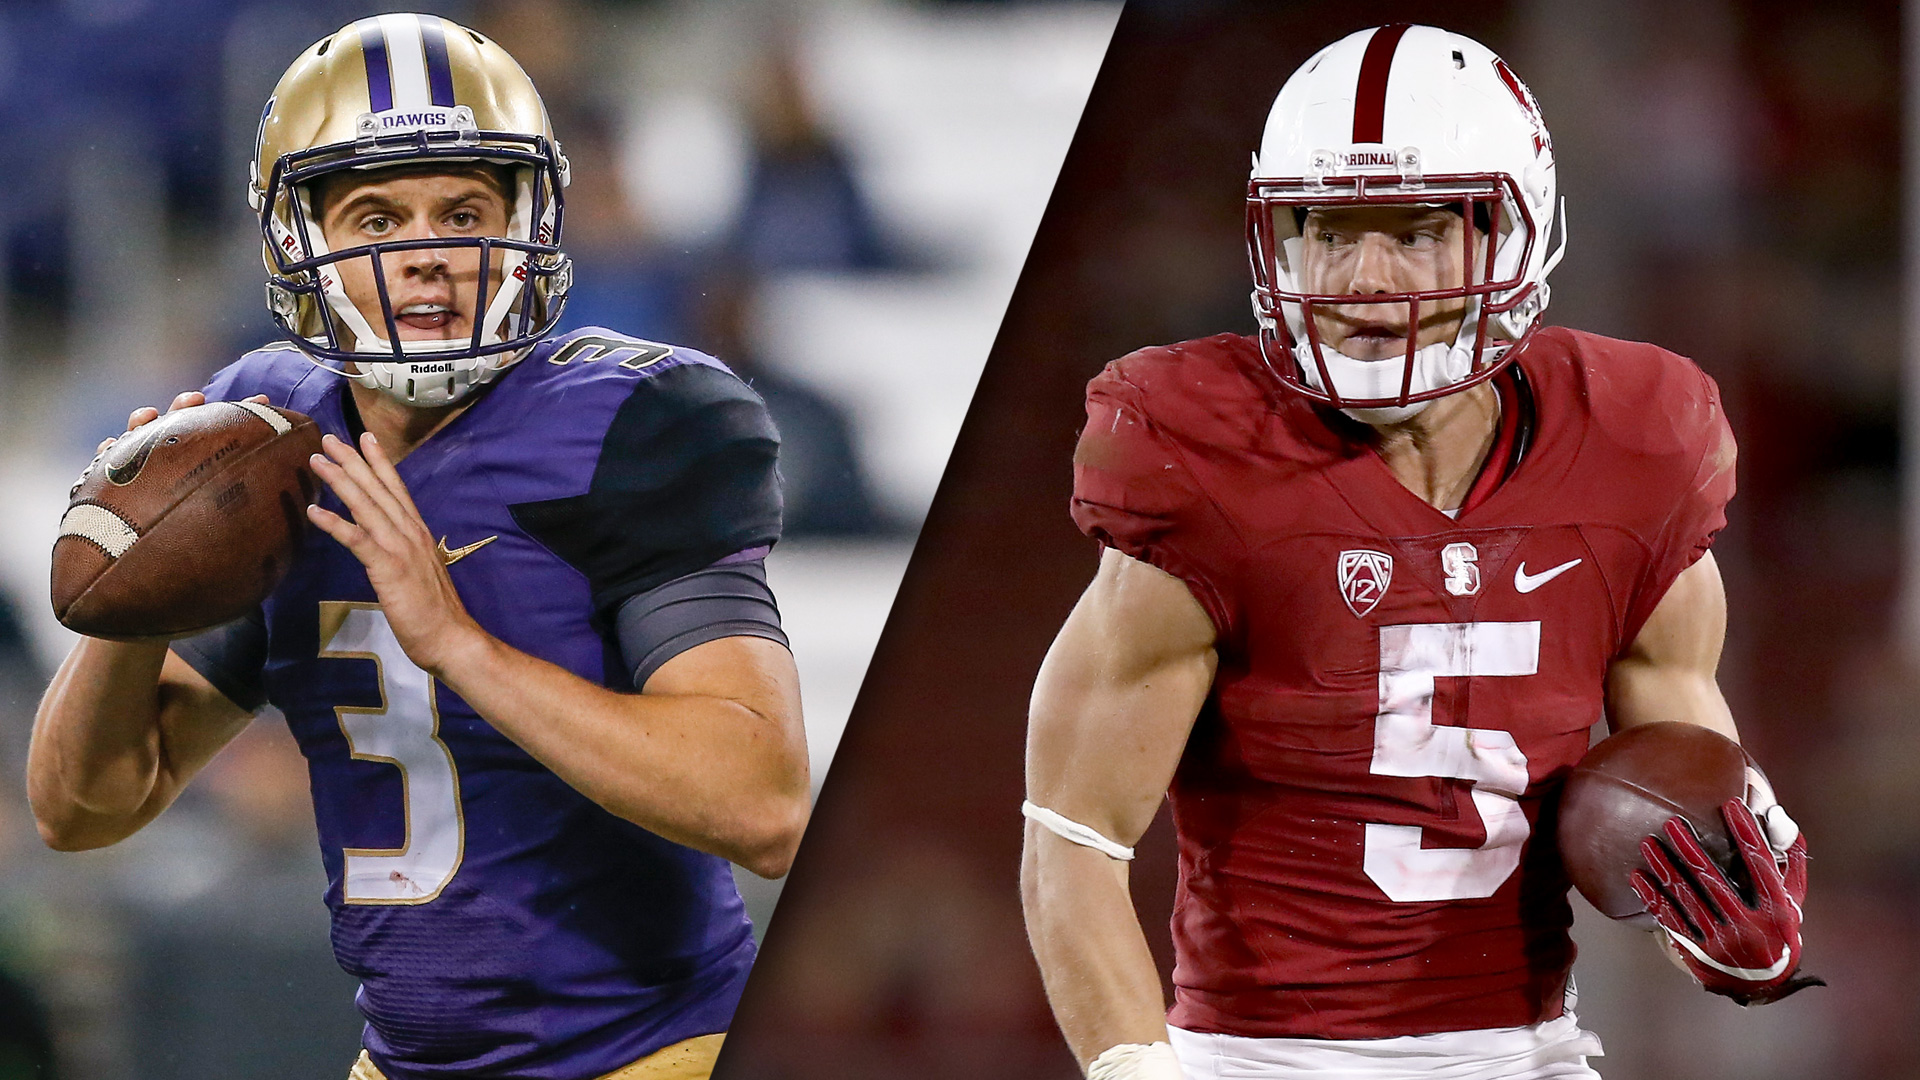 Split-jake-browning-christian-mccaffery-092716-getty-ftrjpg_rx7388uexy5416ay4x4fh23nt